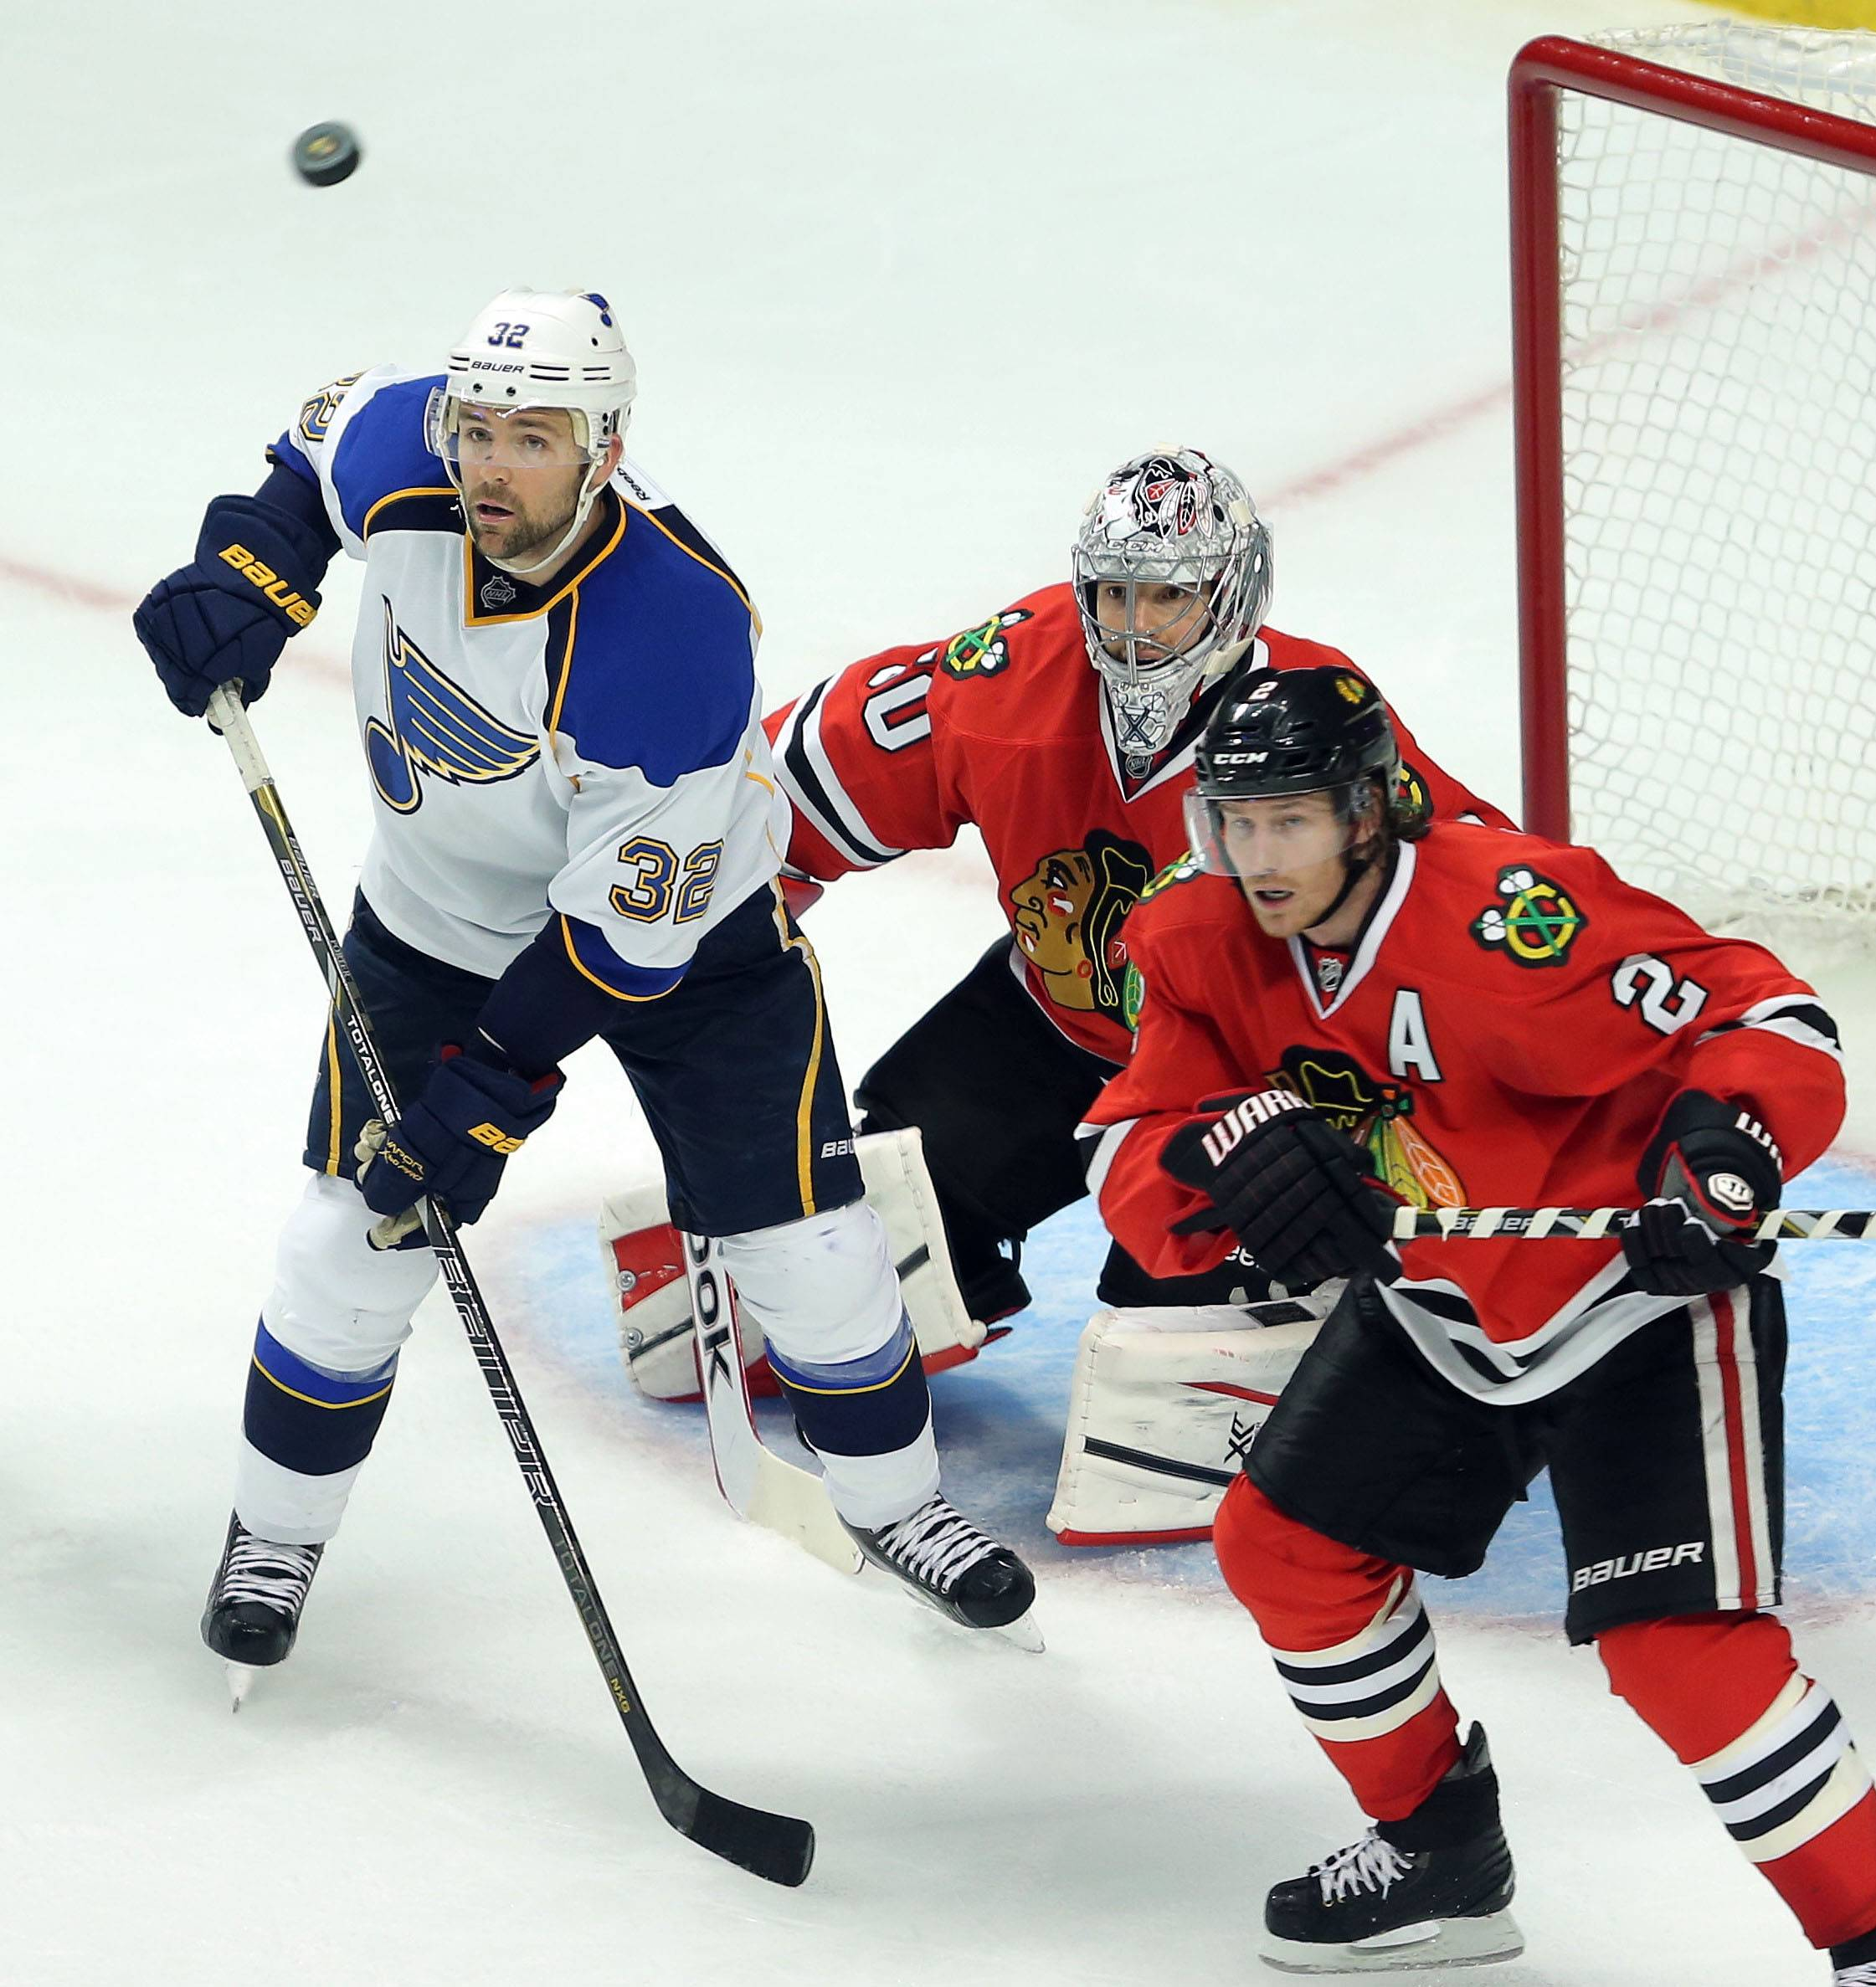 Blackhawks defenseman Duncan Keith (2) was named one of three finalists for the Norris Trophy, the NHL's top defensive honor on Monday.